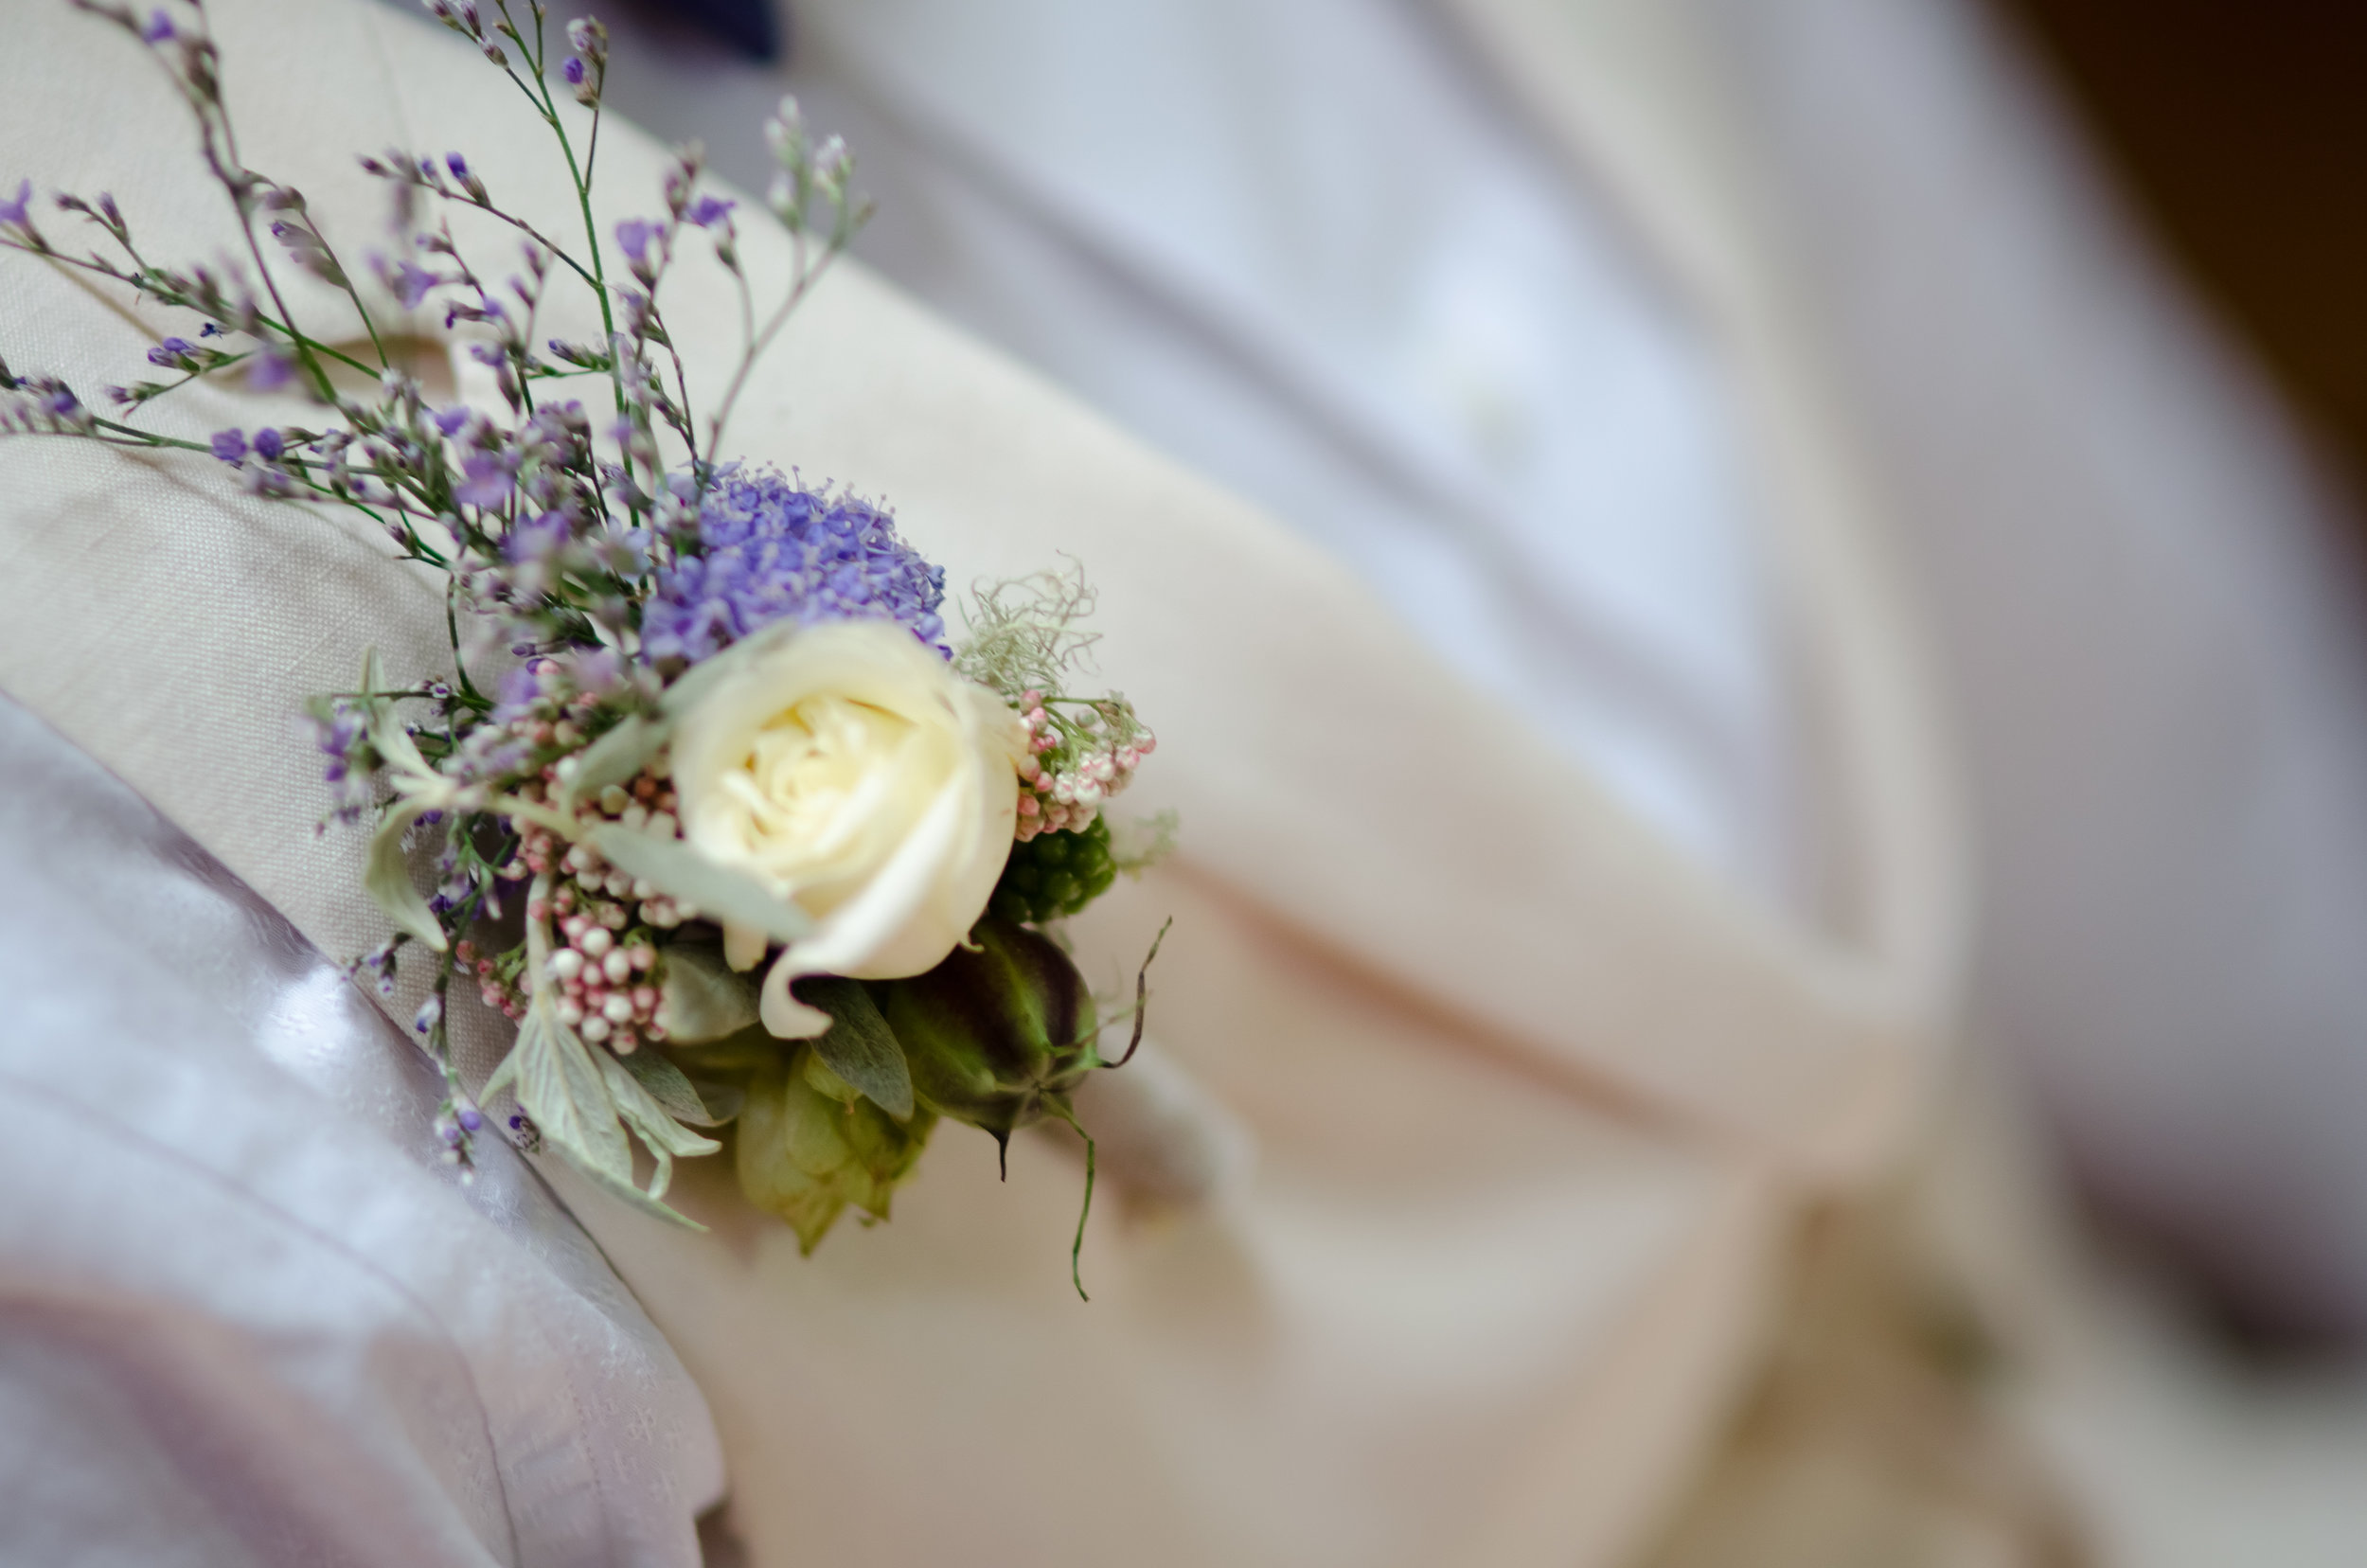 Rustic simplicity at kennolyn - Images by Darling Dear Photography http://darlingdearphotography.com